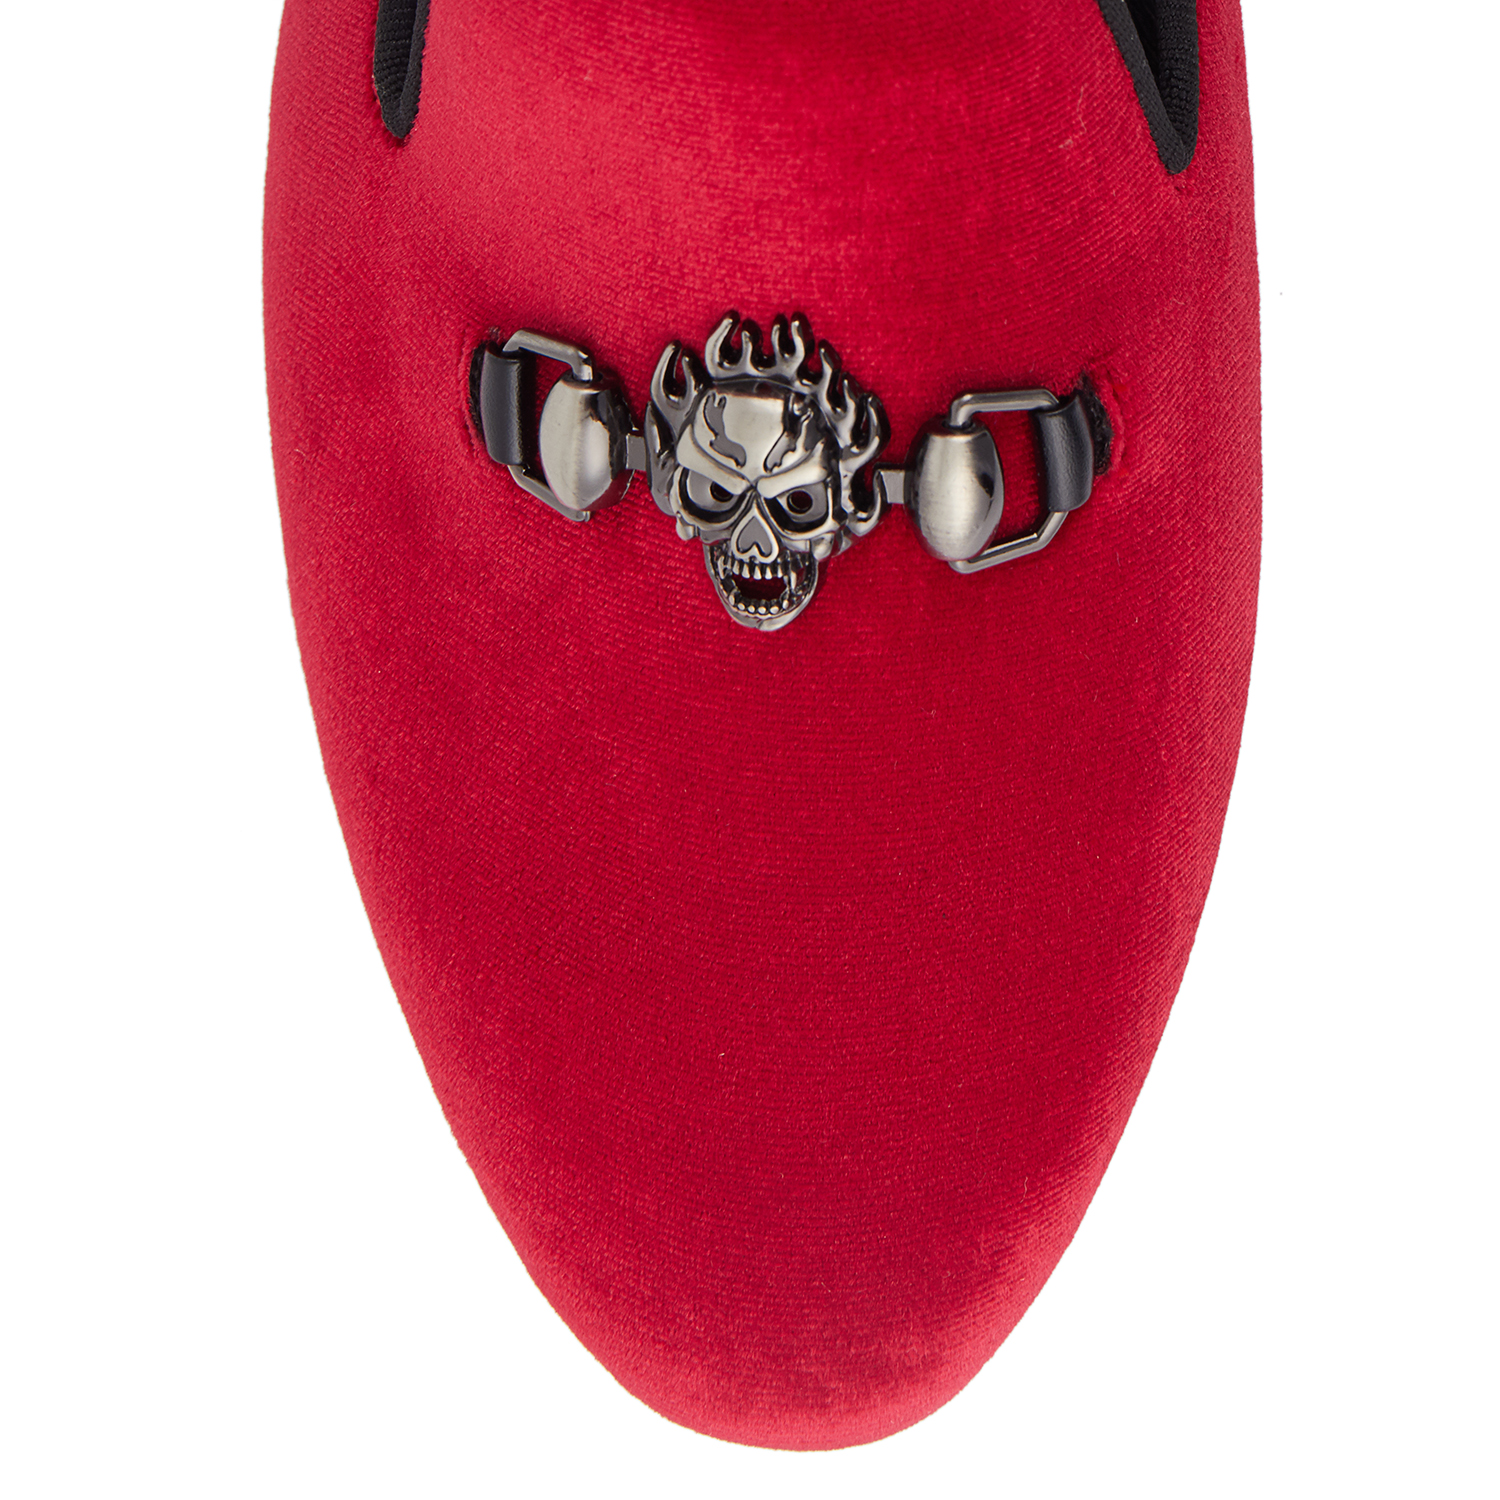 Appartements Hommes rouge Rouge Harpelunde Mocassins 6 Taille Chaussures Velours 14 Boucle Noir Crâne 7Ban0nwxqd